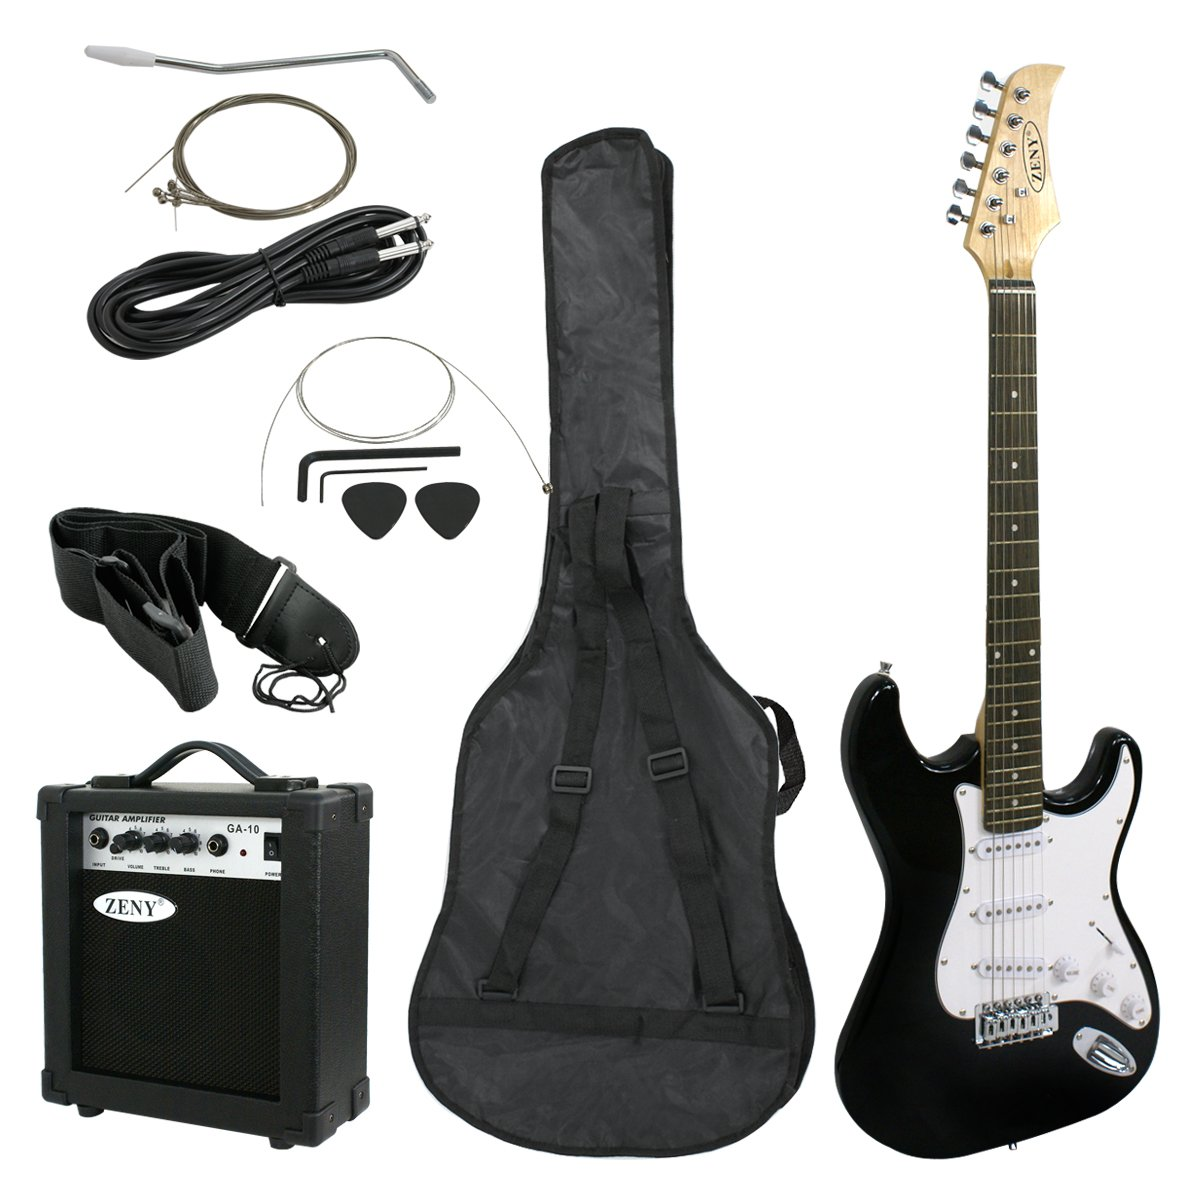 ZENY 39'' Full Size Electric Guitar with Amp, Case and Accessories Pack Beginner Starter Package (Black) by ZENY